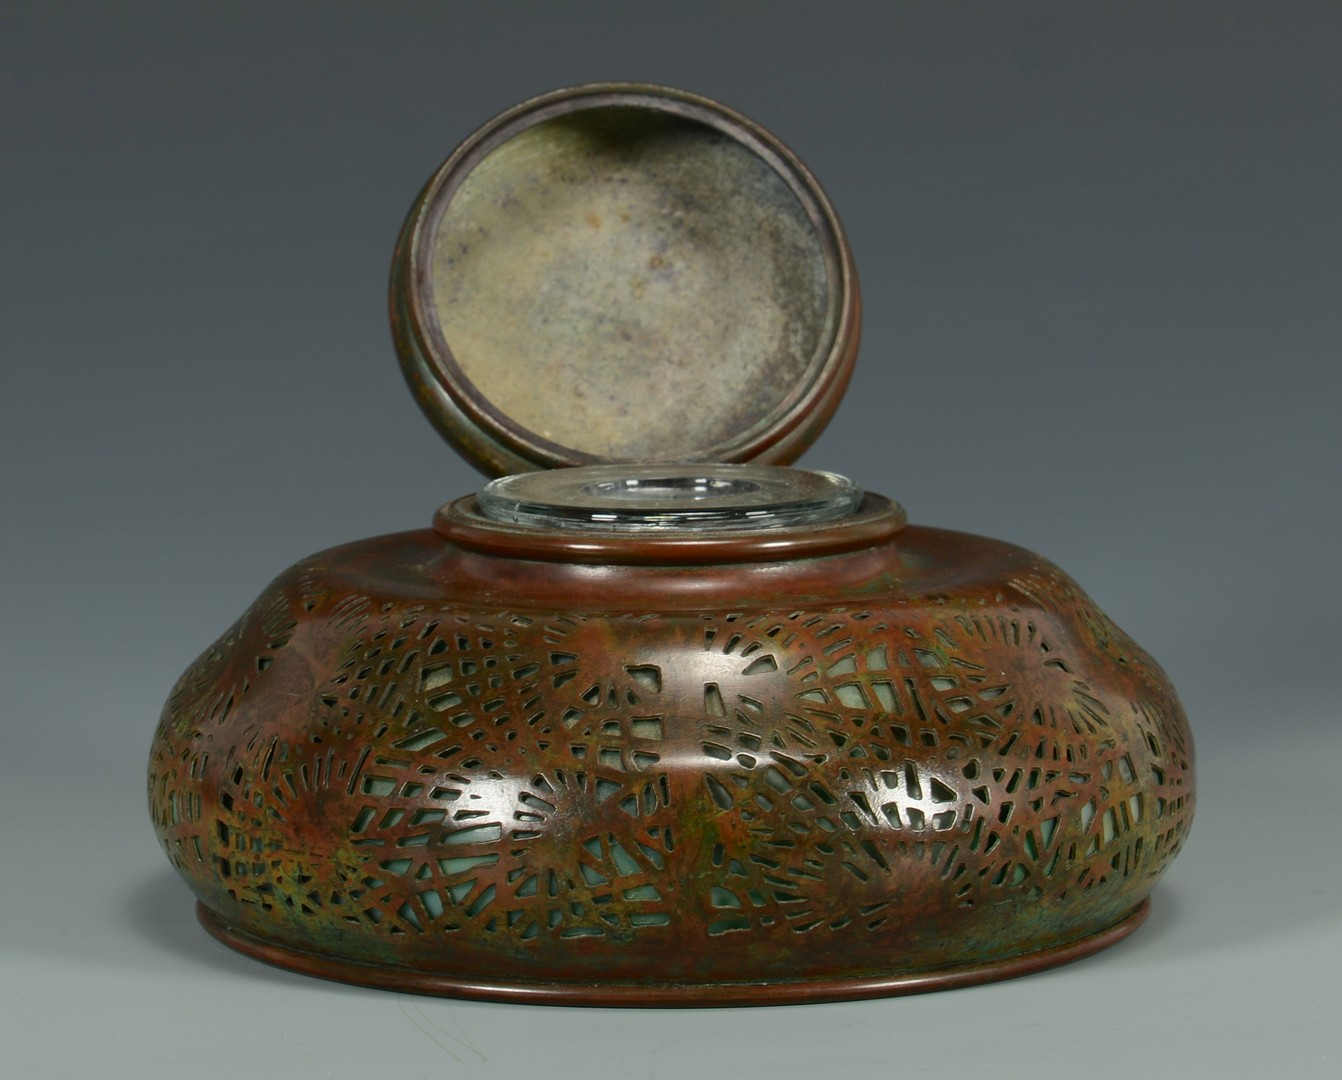 Lot 39: Tiffany Bronze & Glass Inkwell, Pine Needle Pattern